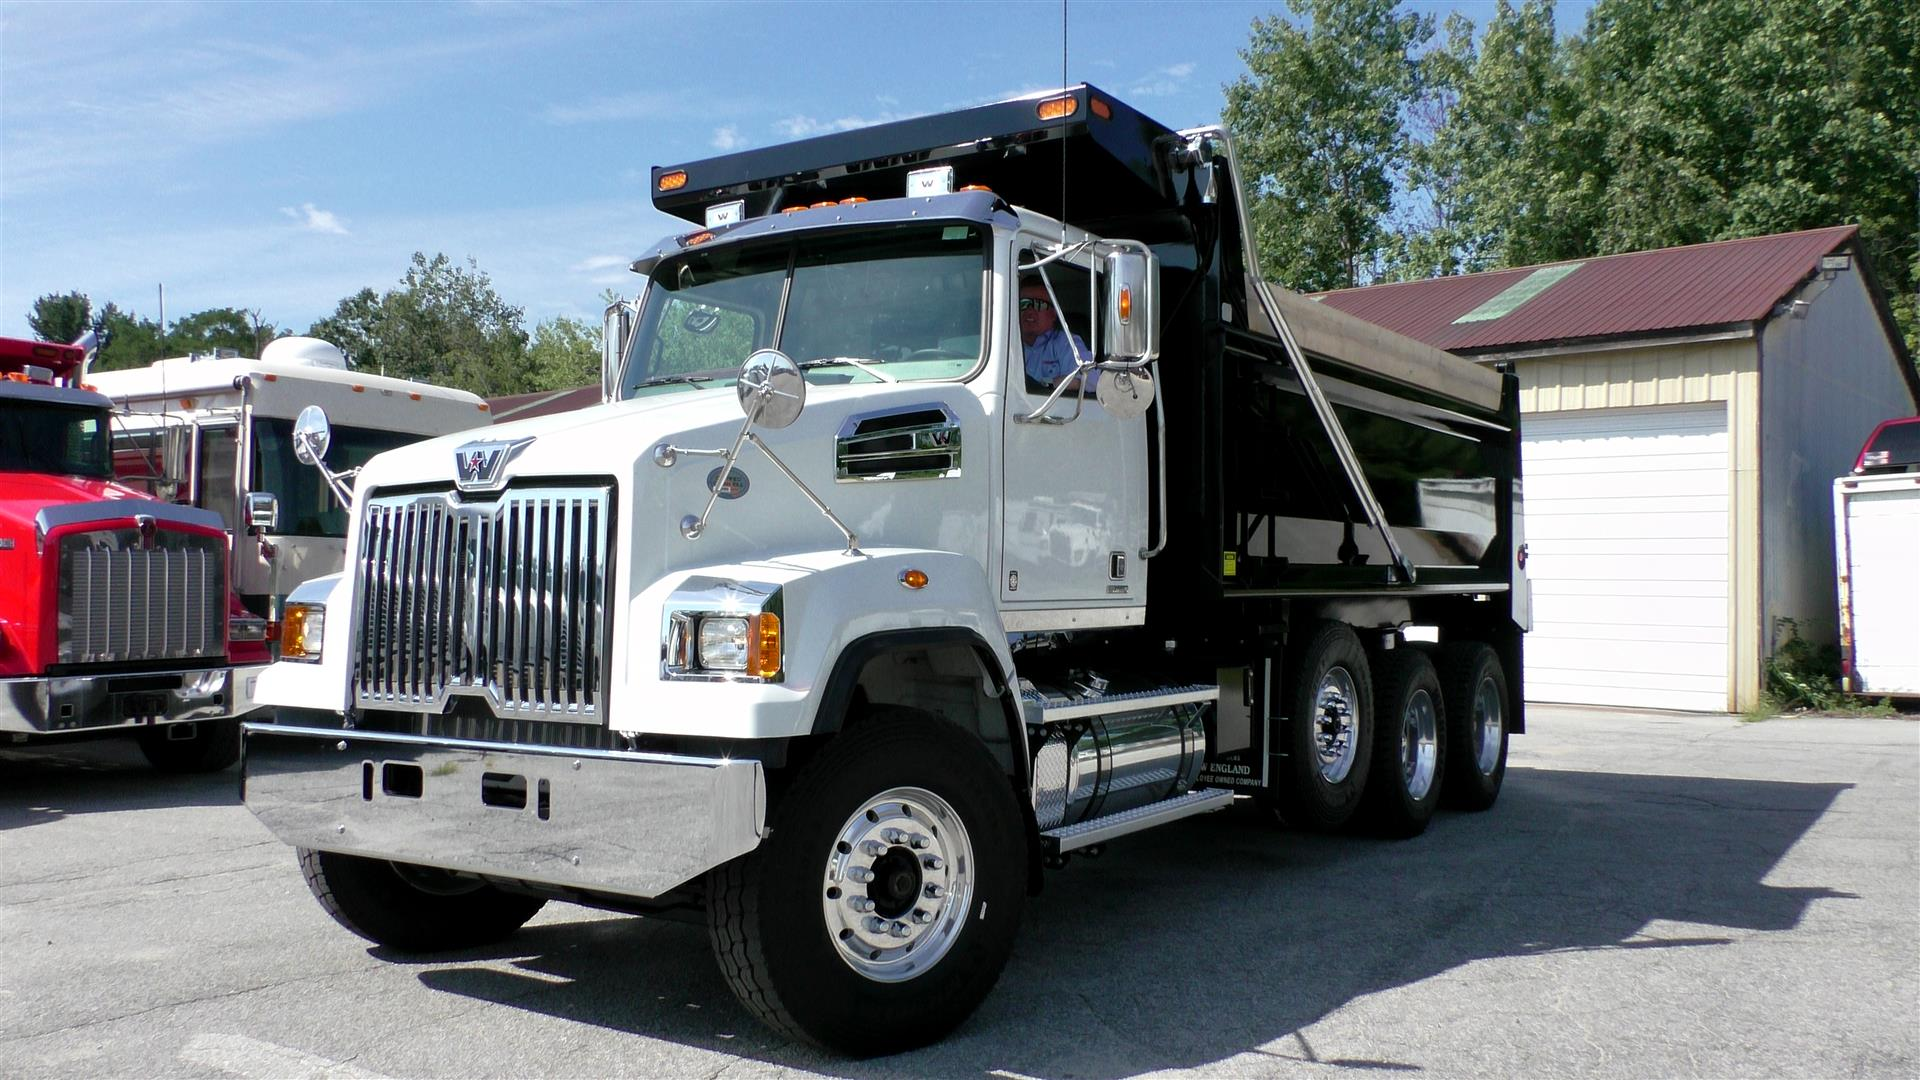 truck paper dump trucks for sale Quality used dump trucks for sale at affordable prices and excellent condition at equip enterprises llc on our platform, you will find top quality dump trucks for sale by owner.